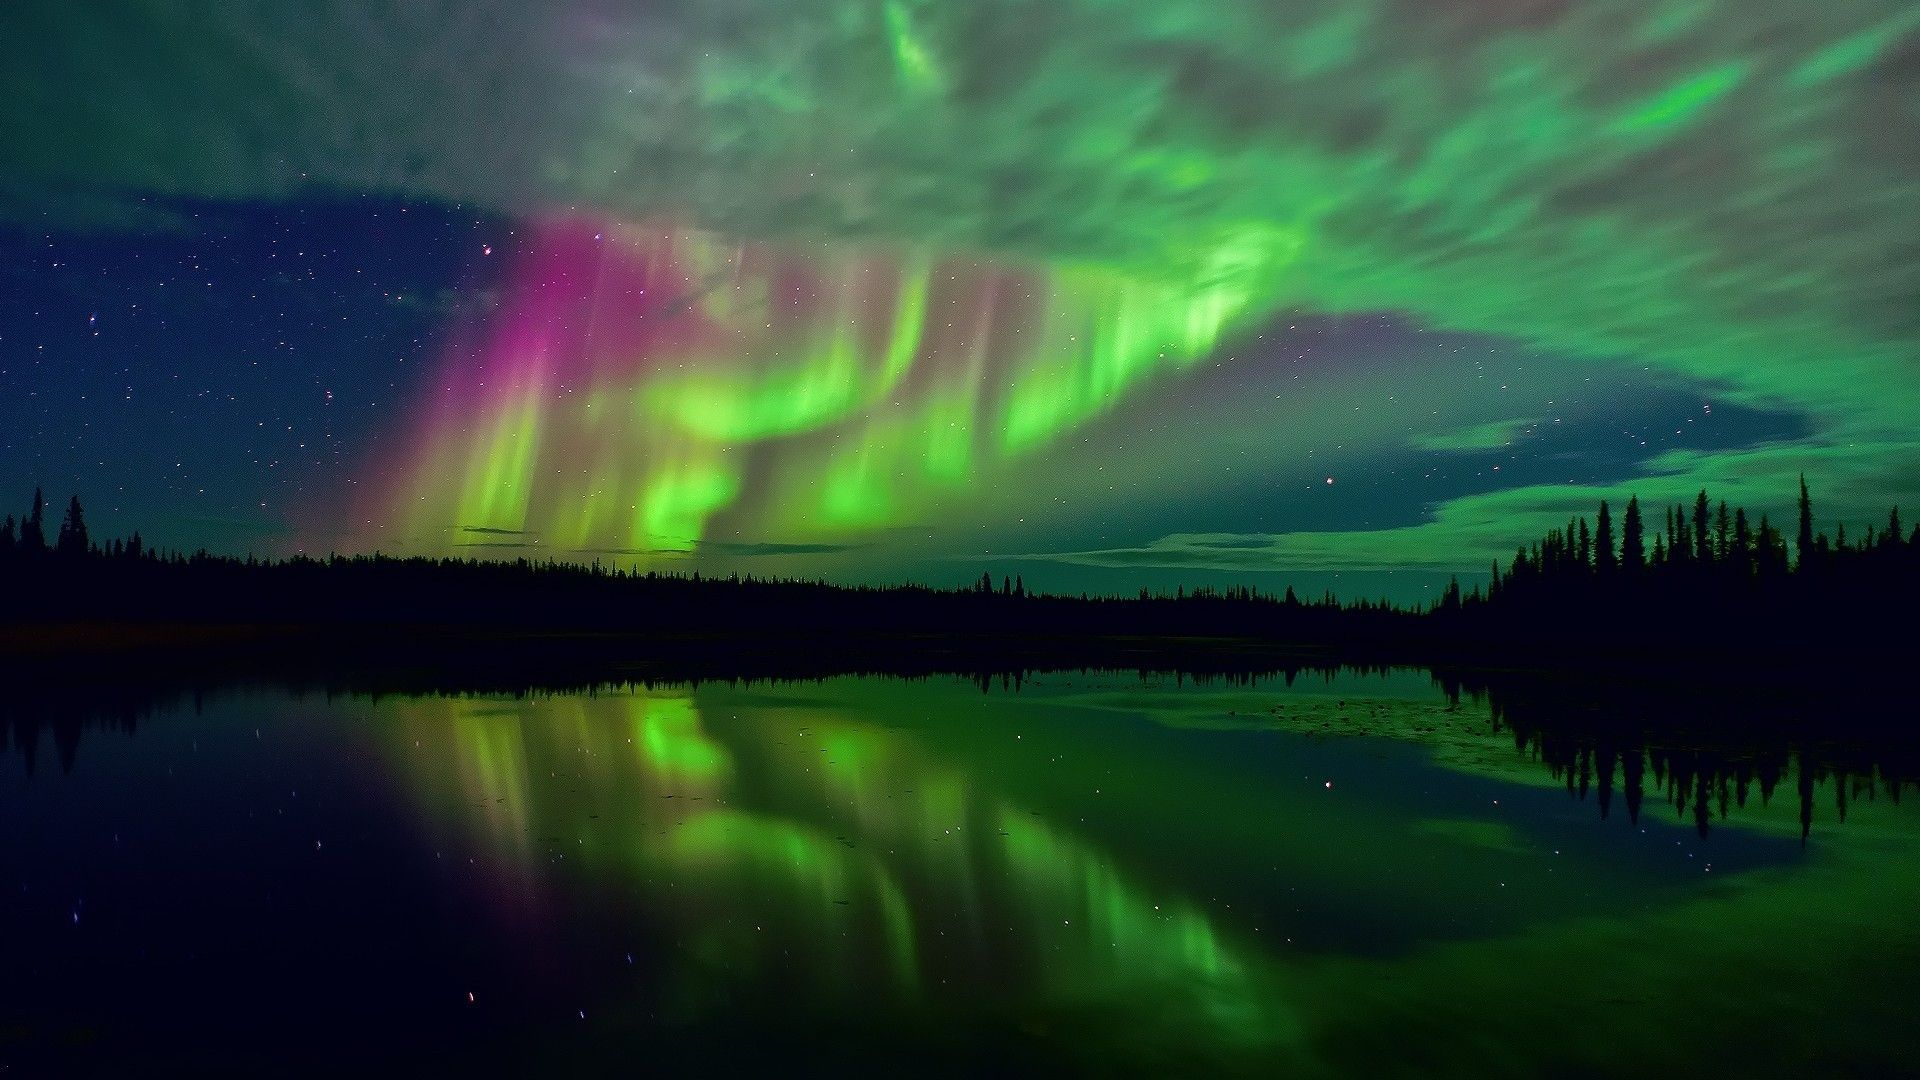 aurora borealis northern lights wallpaper - wallpaper. | aurora